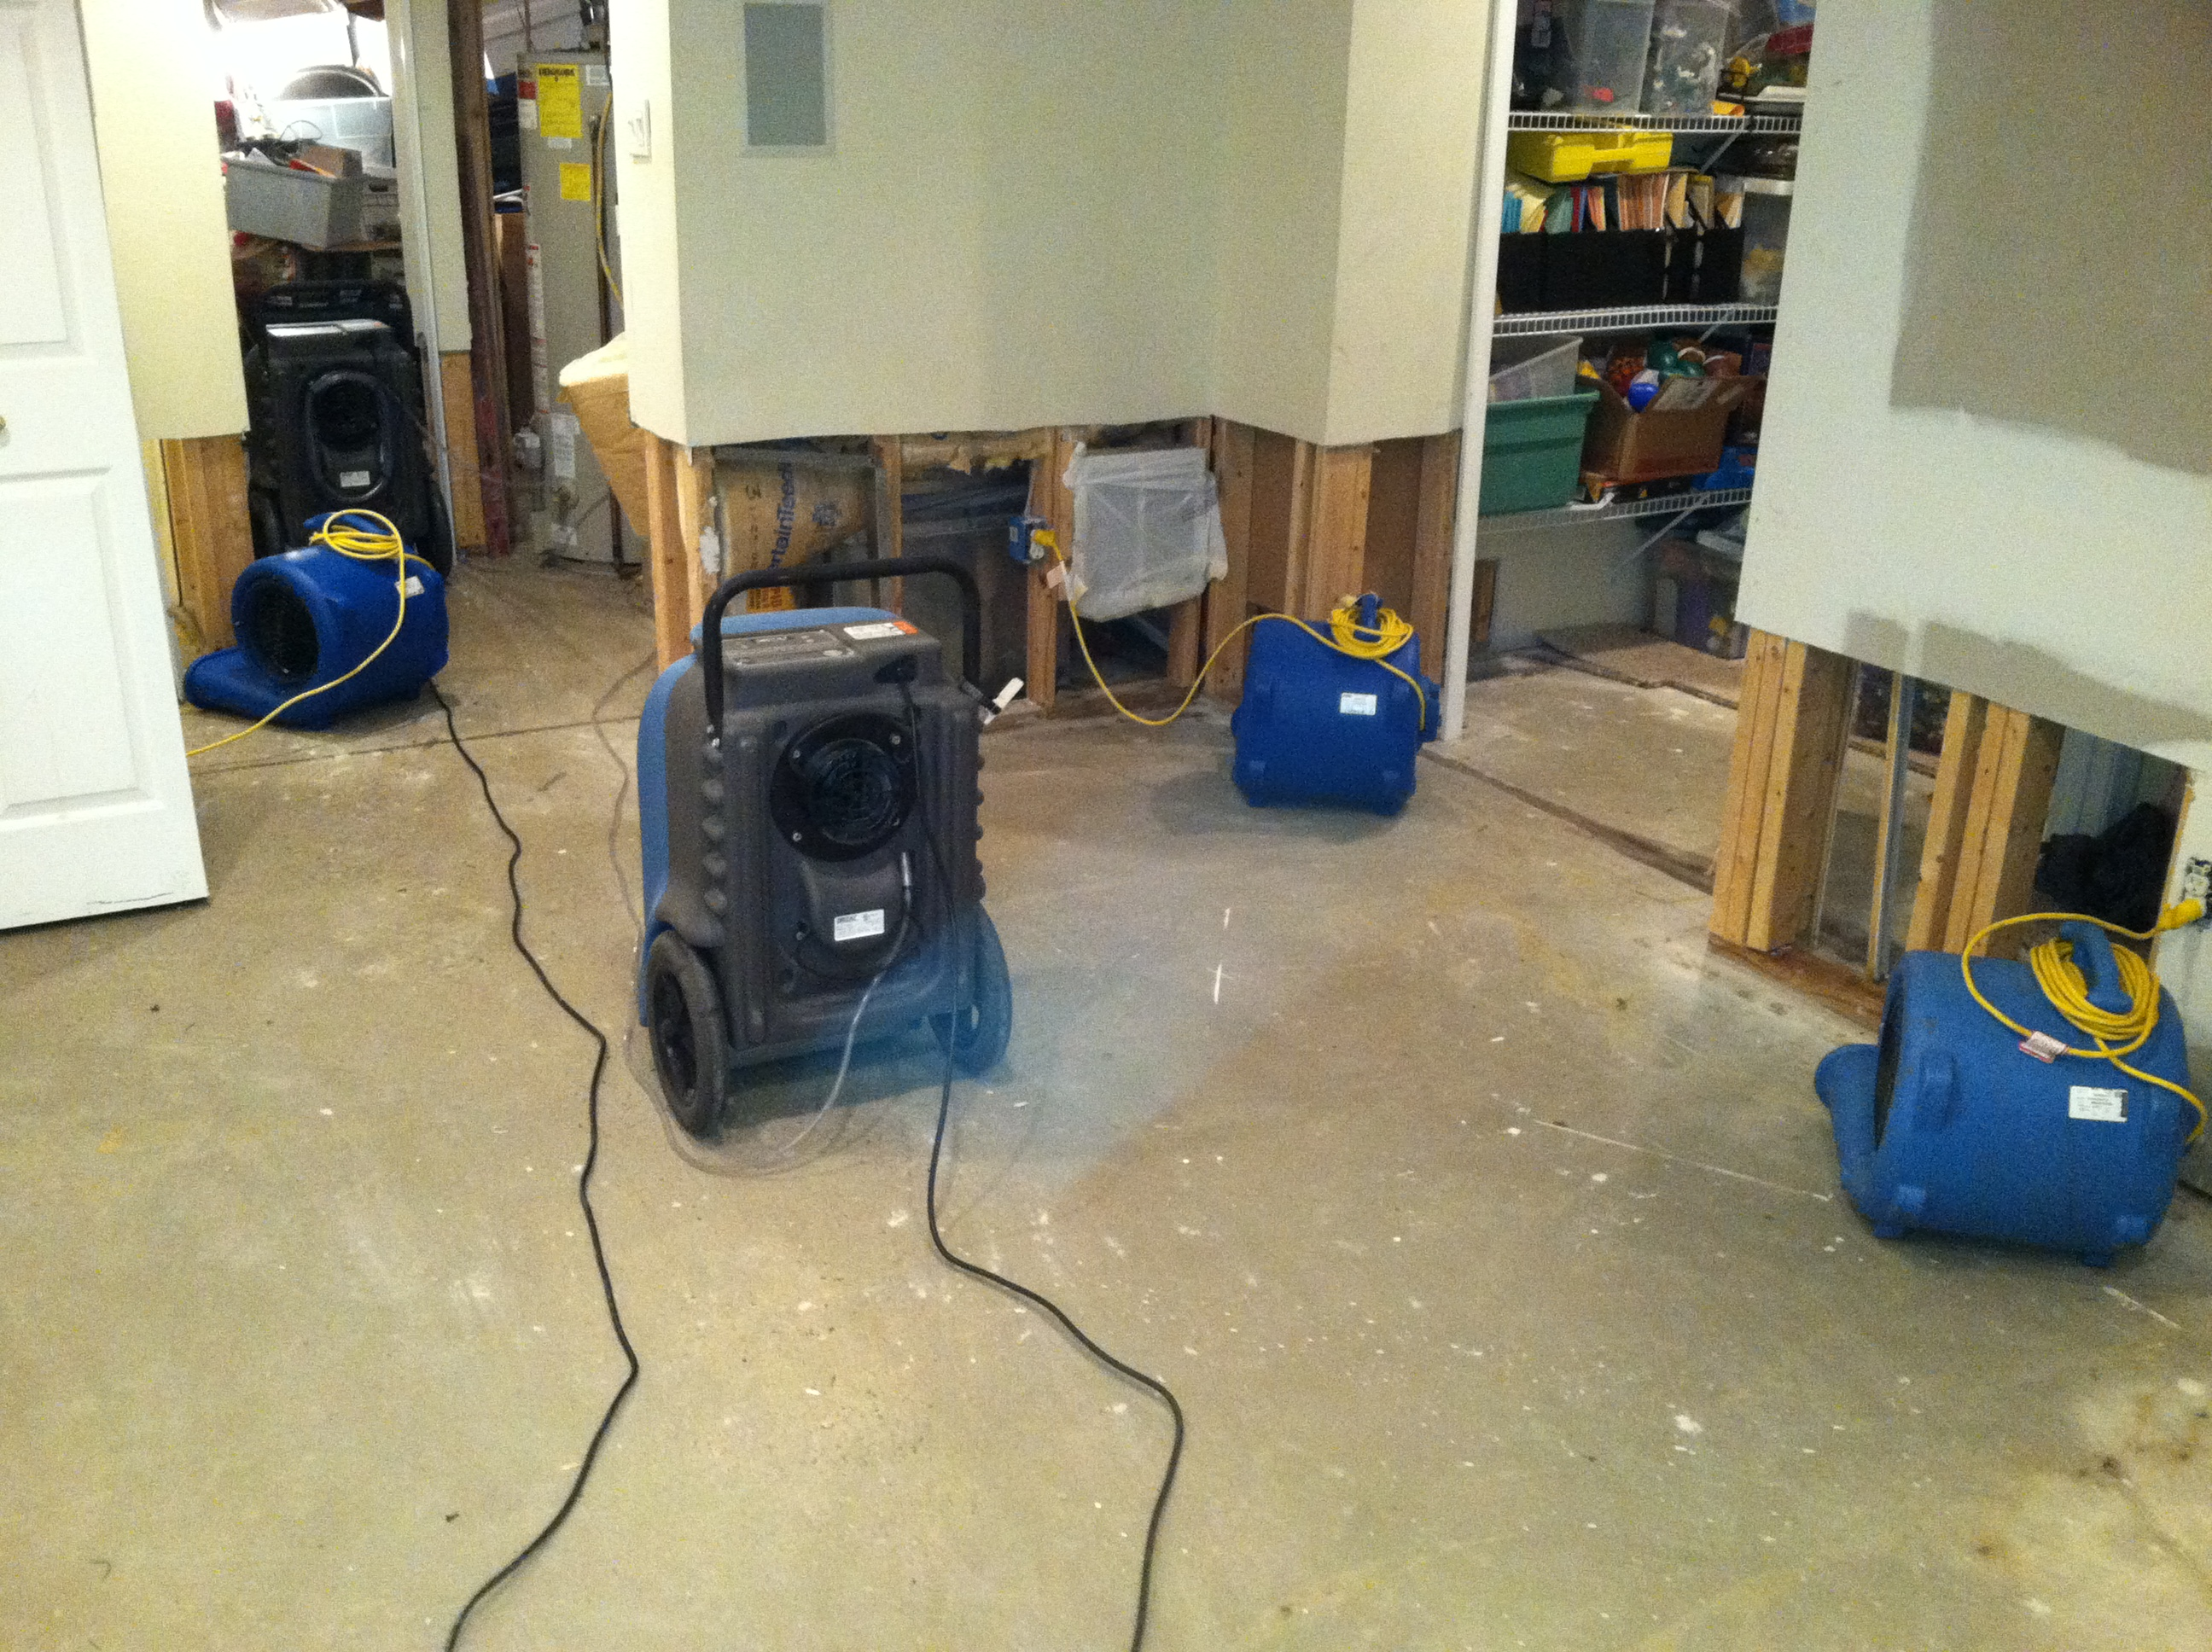 Image of drying fans in a previously flooded basement dwelling